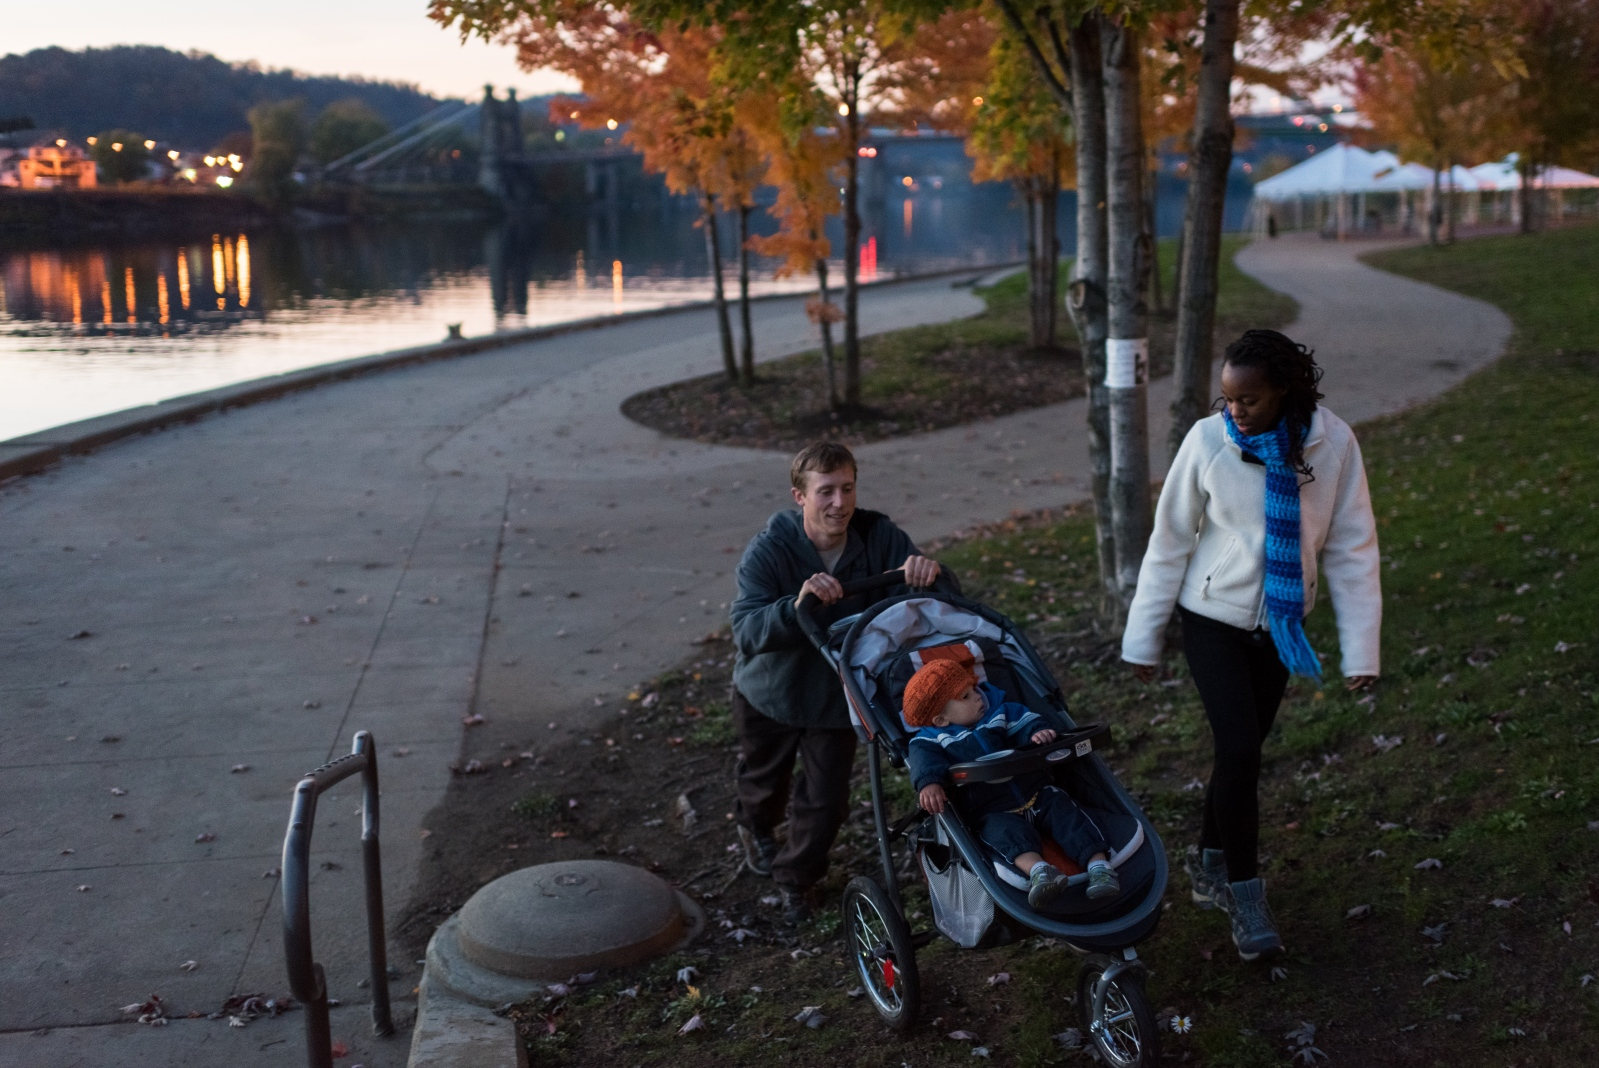 Danny Swan and Gloria Reina take an evening walk with their son, Sero. Wheeling's population has been declining for decades, with young people in particular leaving in large numbers. In the past few years, however, some young people have been moving in to put down roots, starting families and new ventures like Swan's Grow Ohio Valley. Some feel optimistic that this new small influx may help carve out a new direction for post-industrial Wheeling.